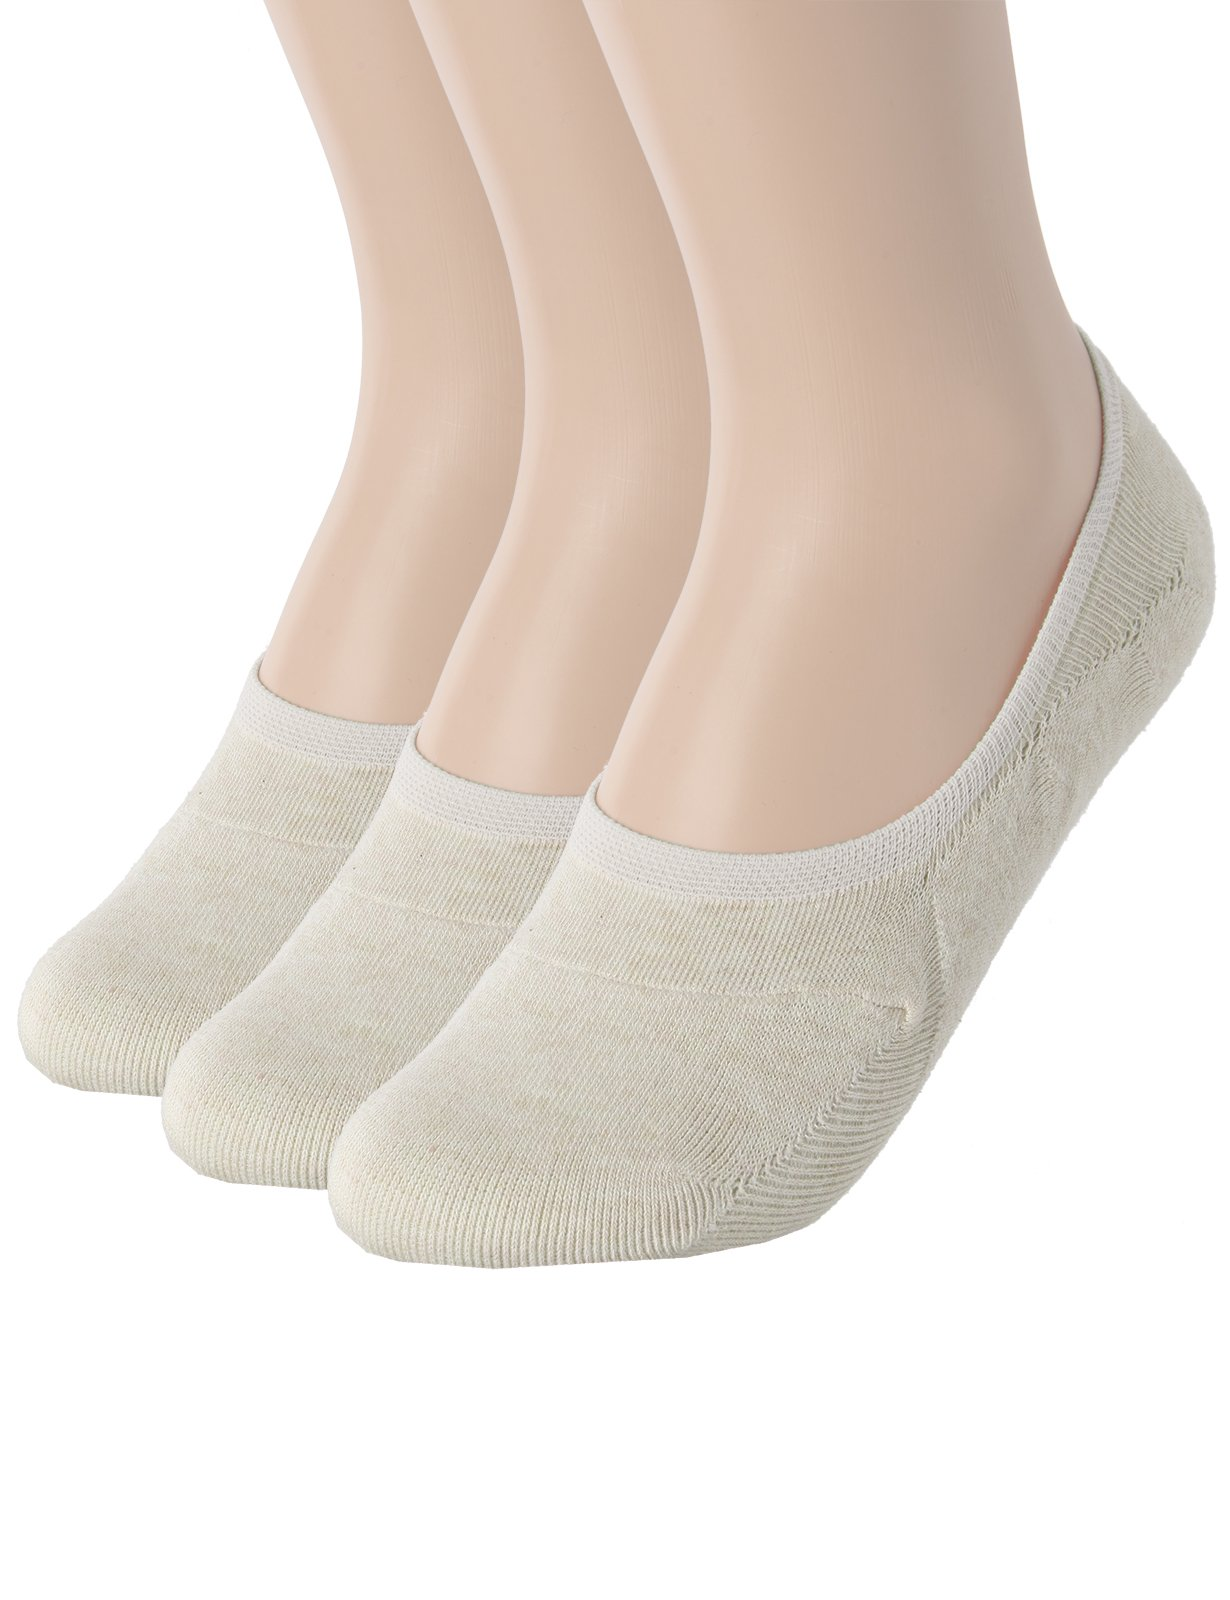 OSABASA Womens Casual No-Show 3Pairs Socks of Various Pastel Colors BEIGE M (SET3KWMS058)